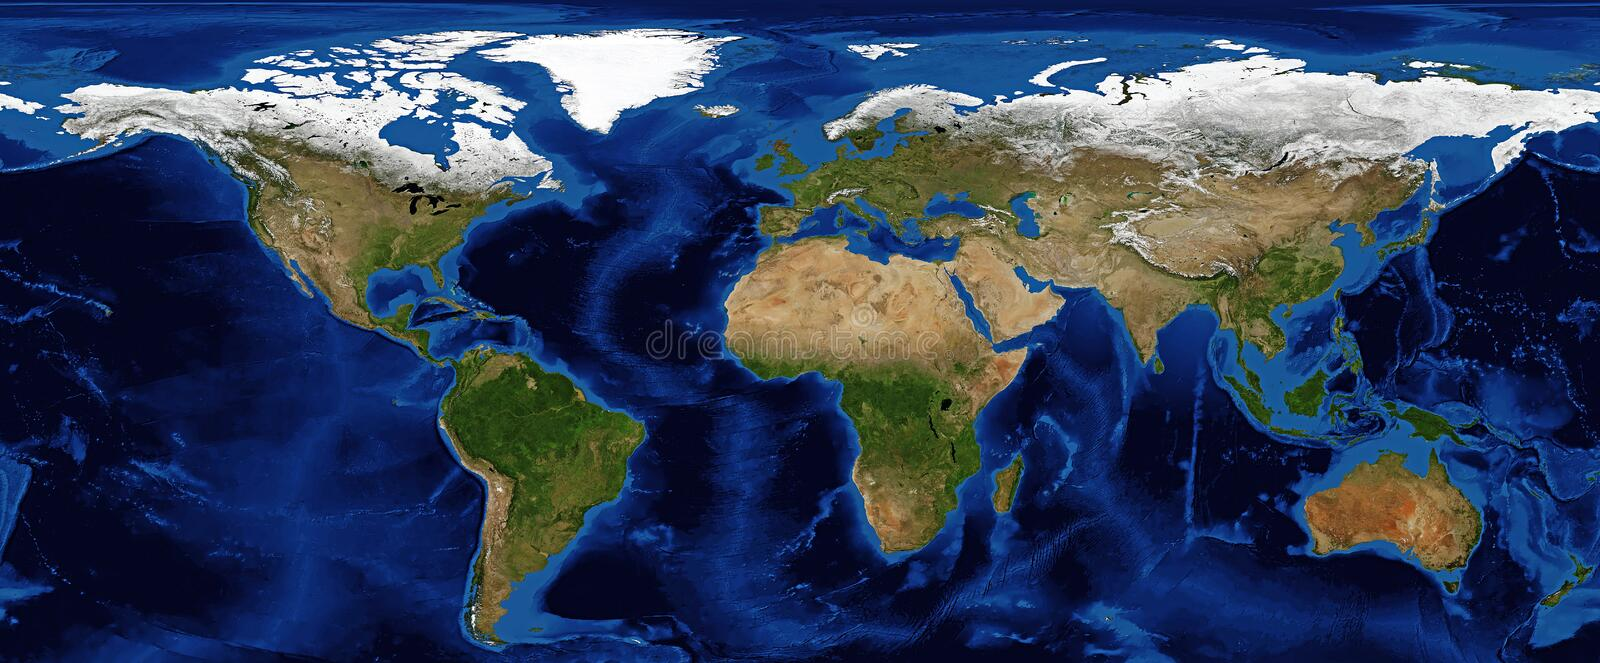 World Map Shaded Relief with Bathymetry. World Map in Shaded Relief and Bathymetry with continents showing snow cover in Spring royalty free stock images